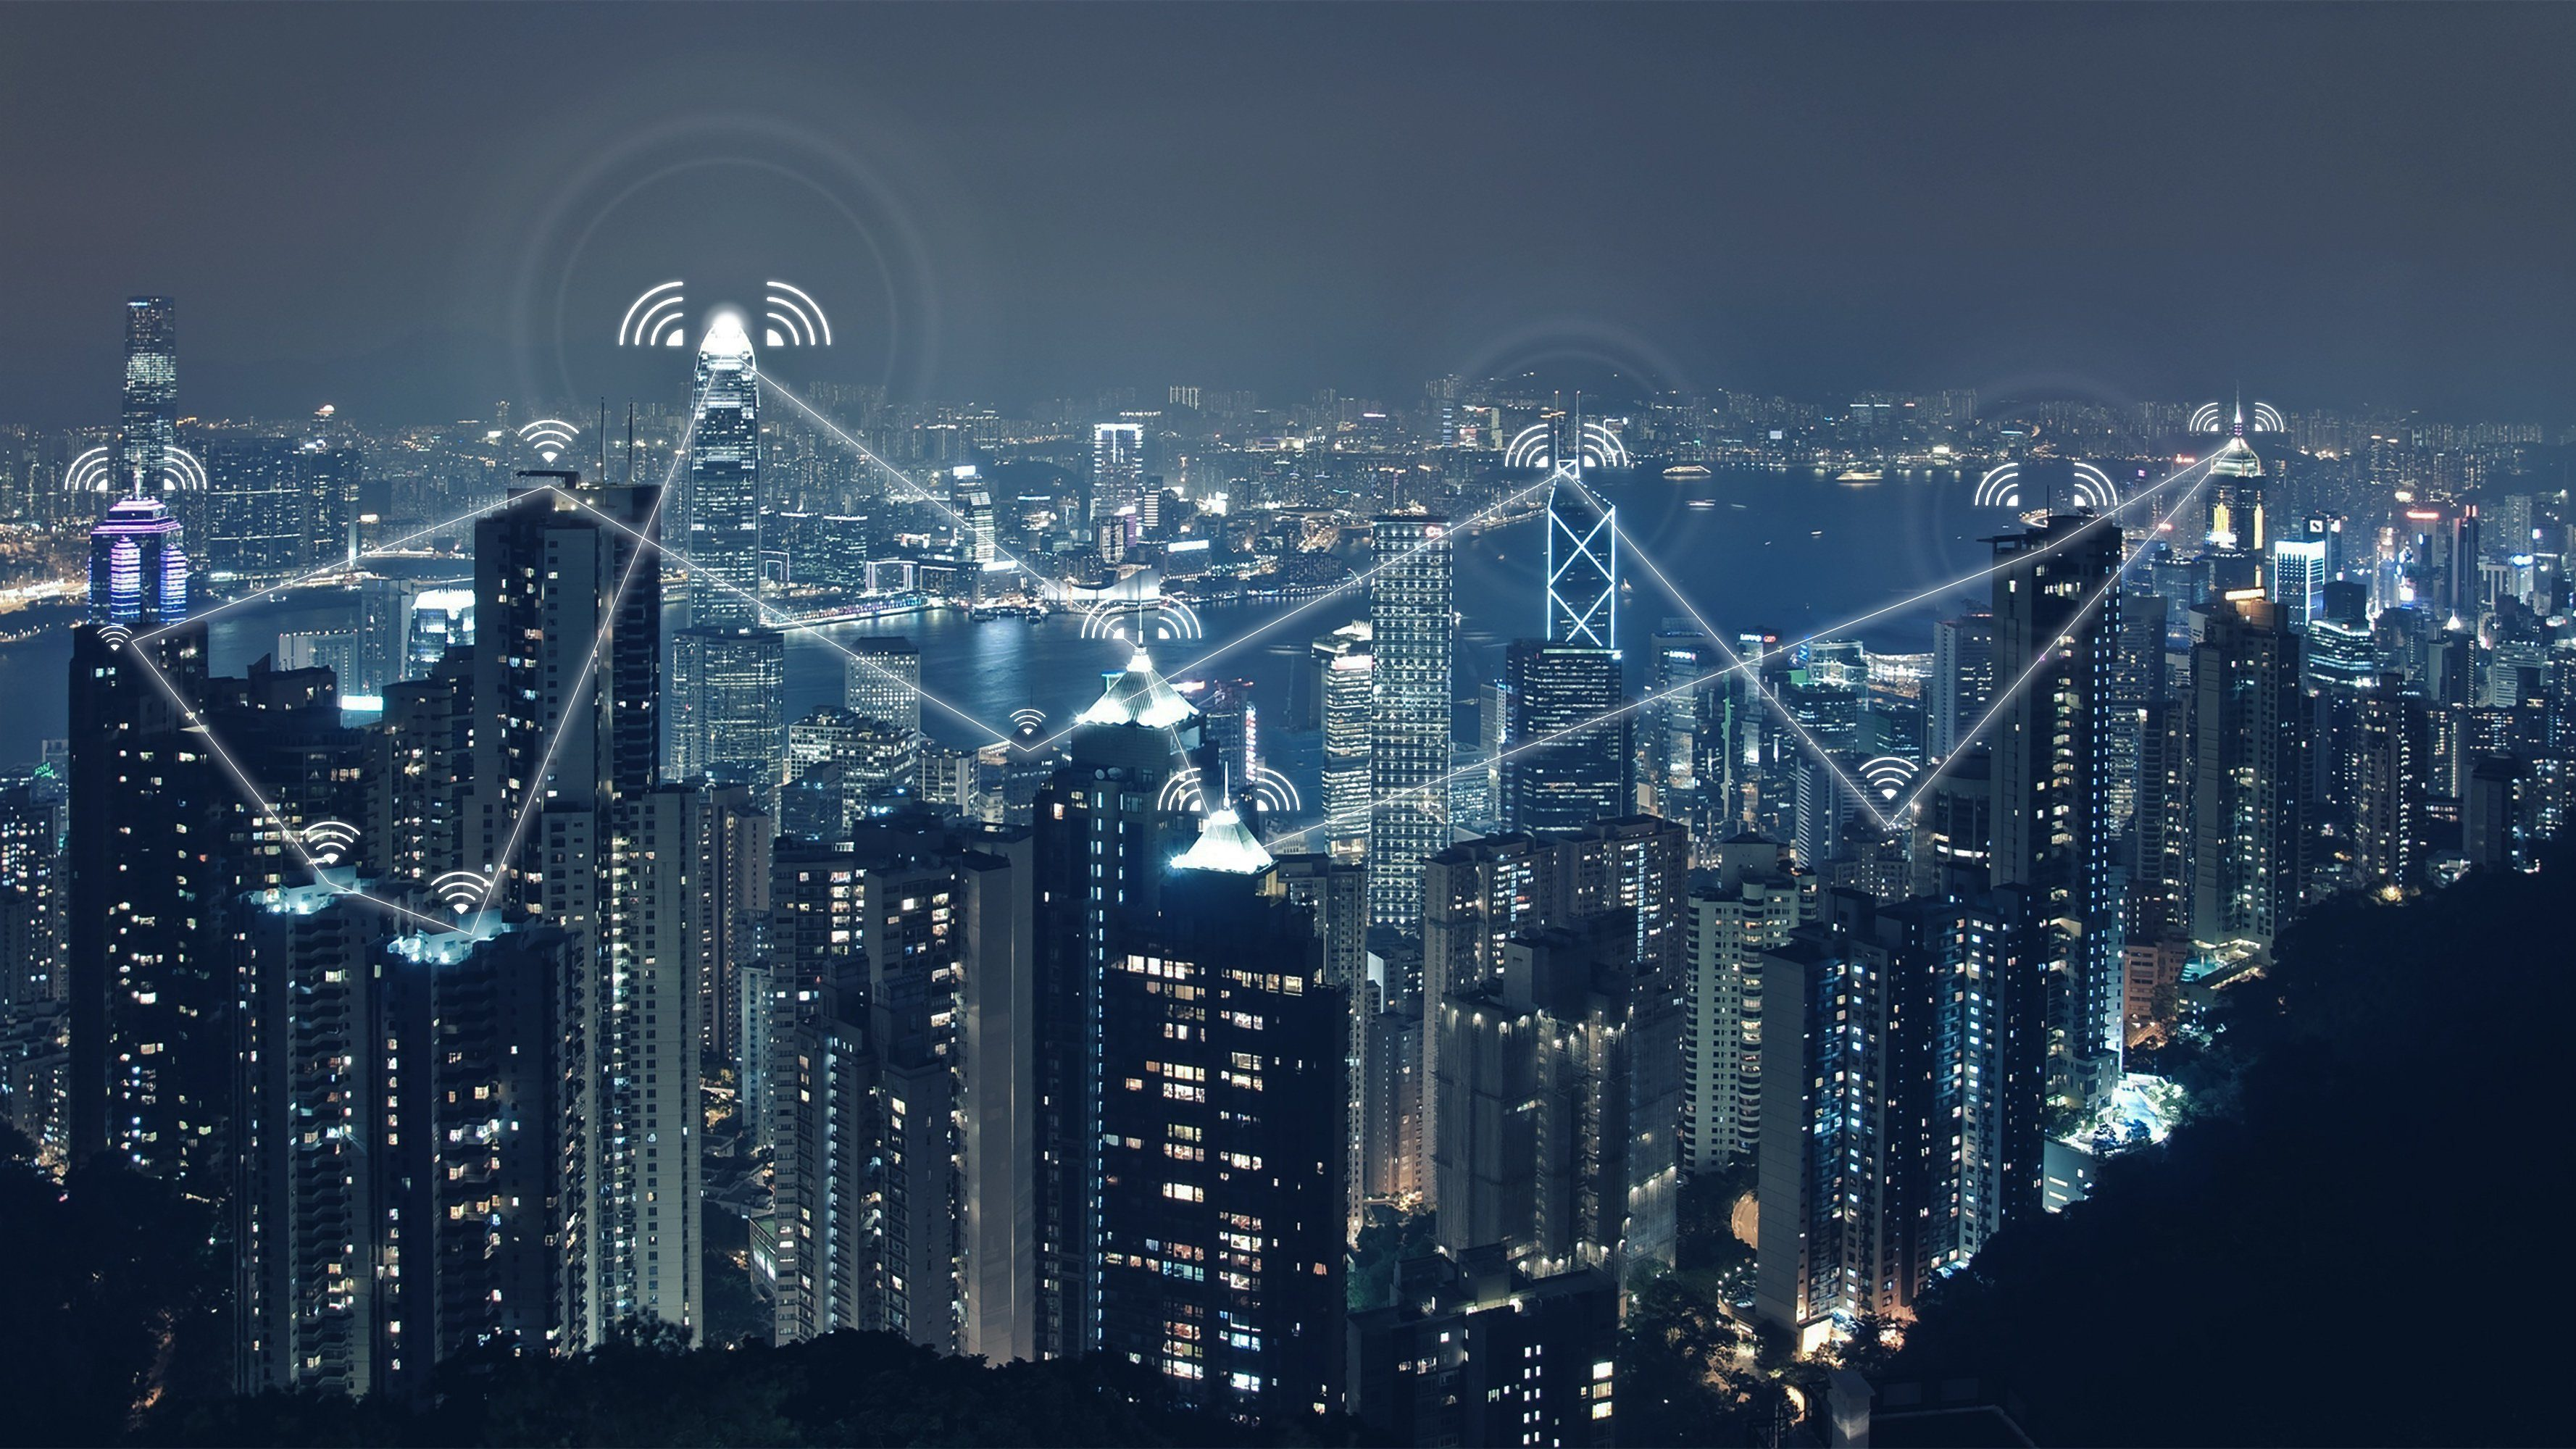 Counterpoint LTE/5G Private Networks